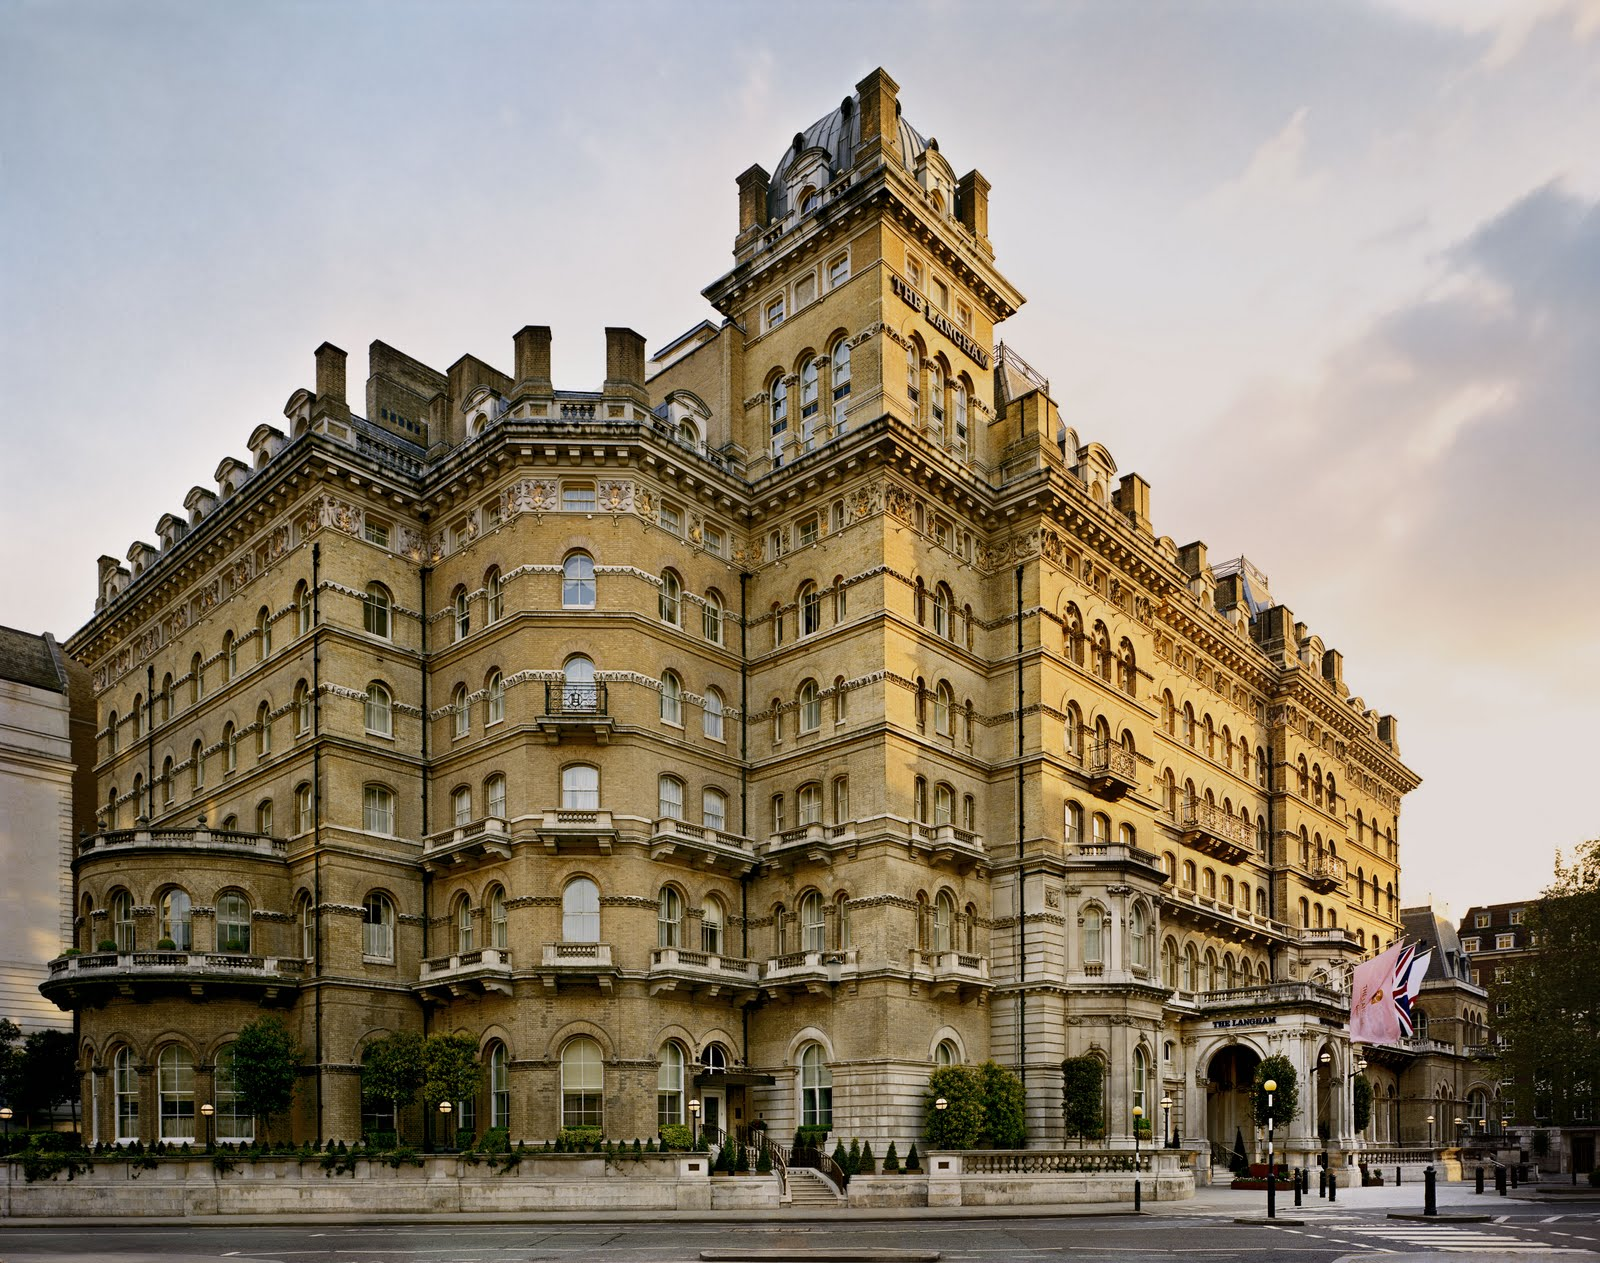 Hottest Fashion Trends And News The Langham 5 Star Hotel In London